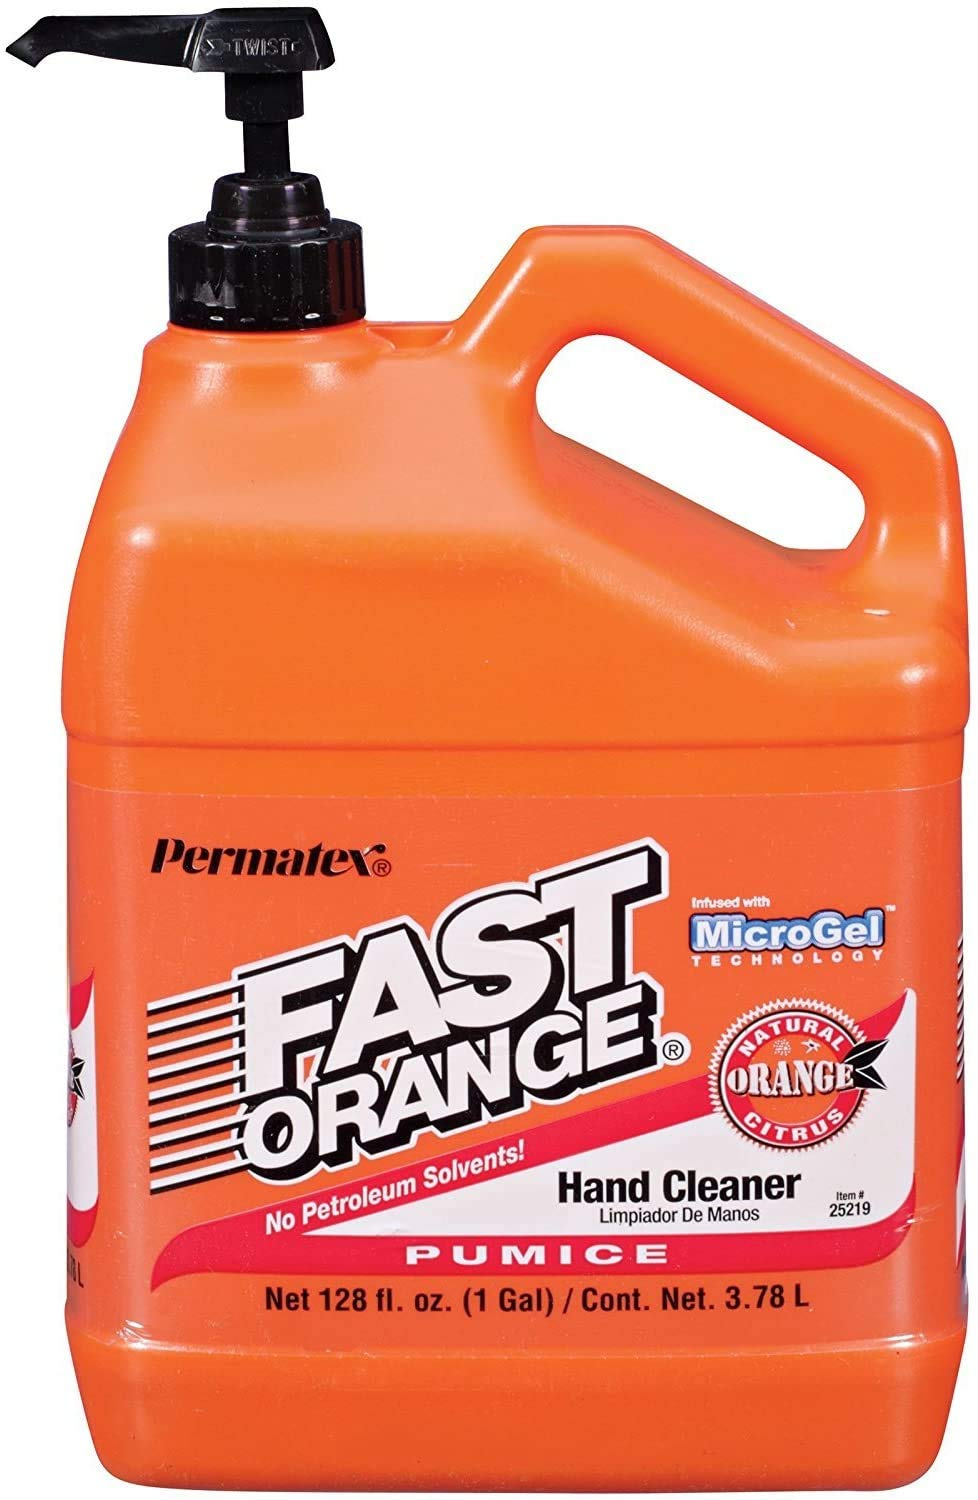 Fast Orange Pumice Lotion Manufacturer direct delivery Hand 1 Cleaner - trend rank Gal